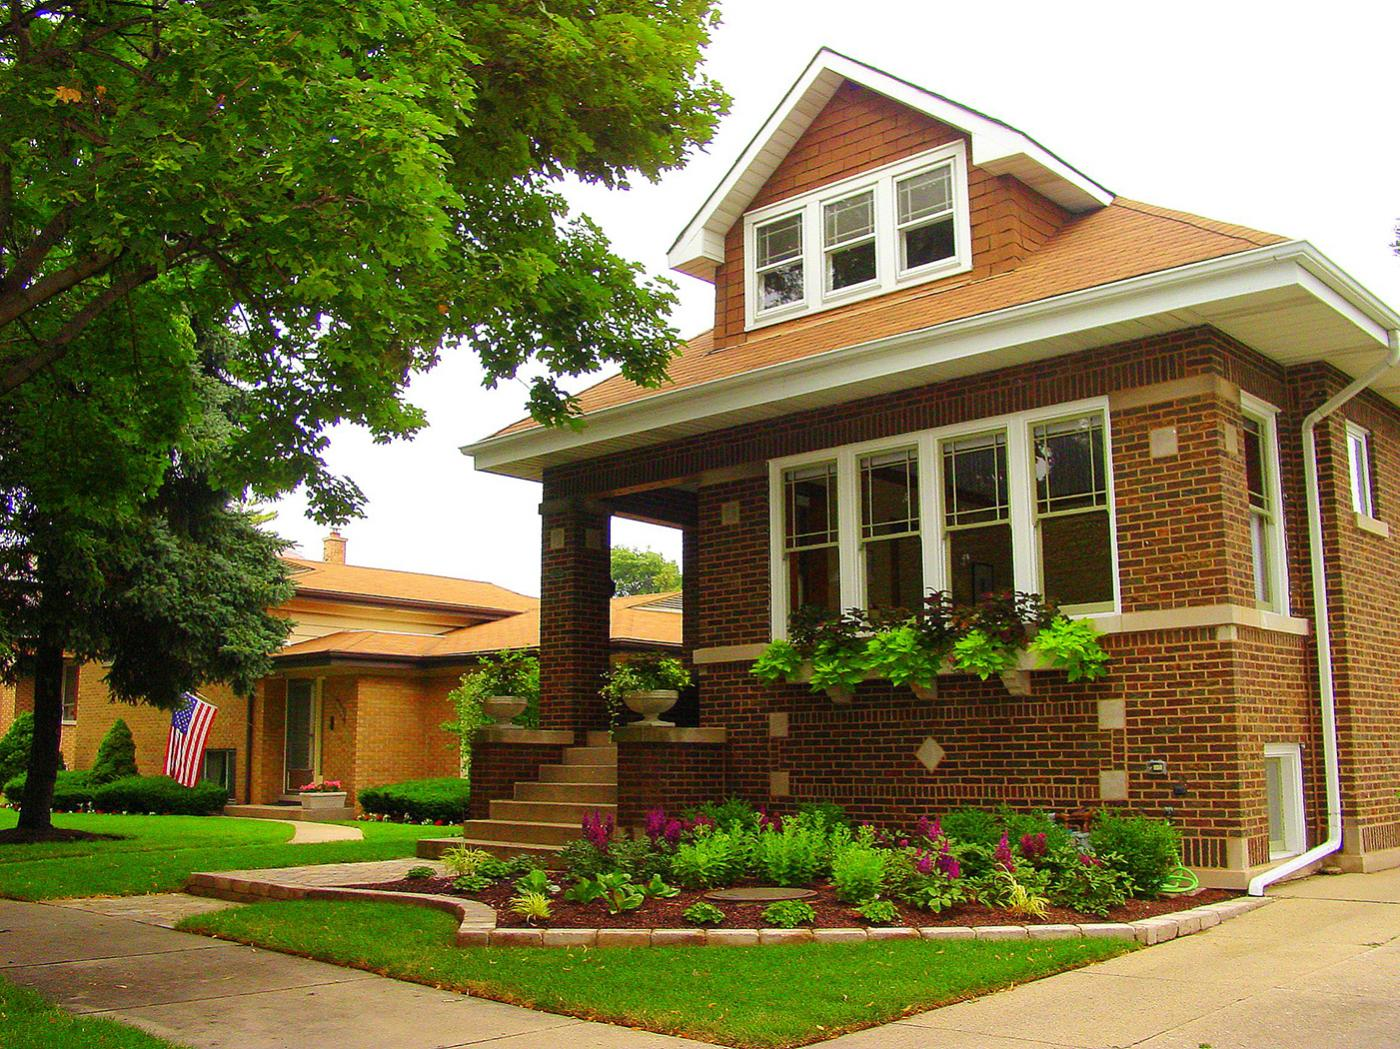 A Chicago bungalow in Skokie, Illinois